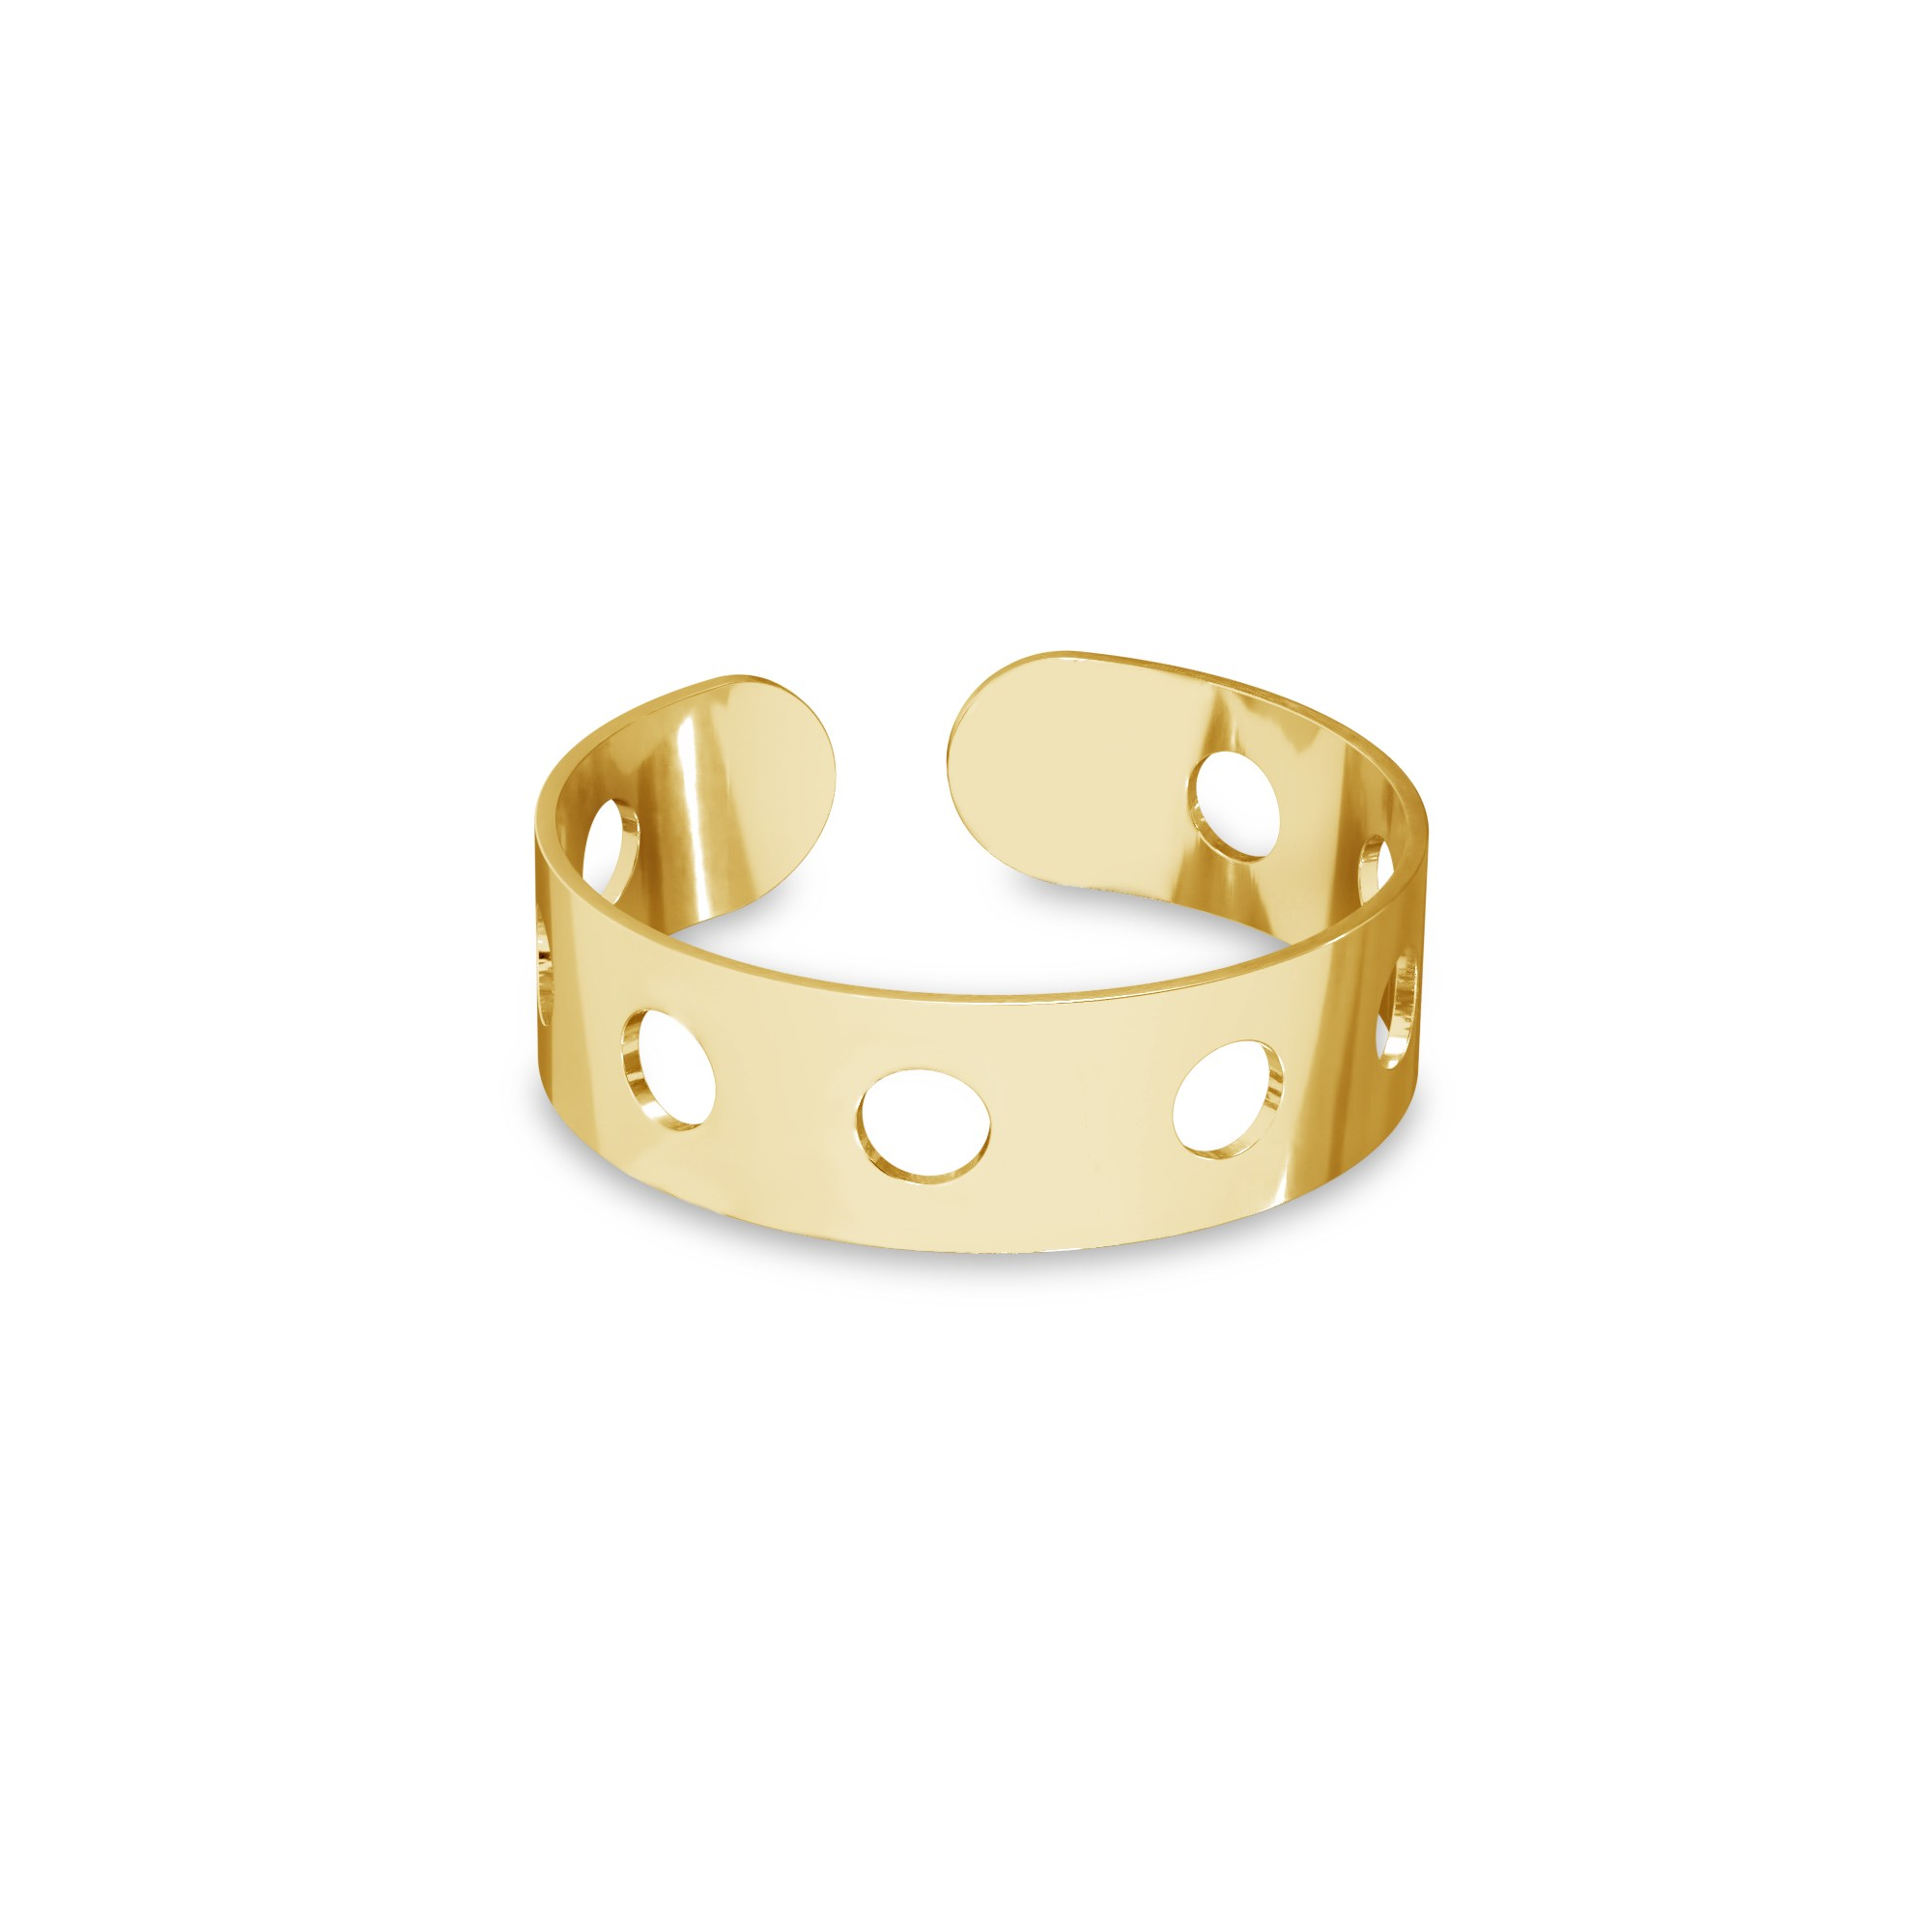 Knuckle ring with wheels, sterling silver 925